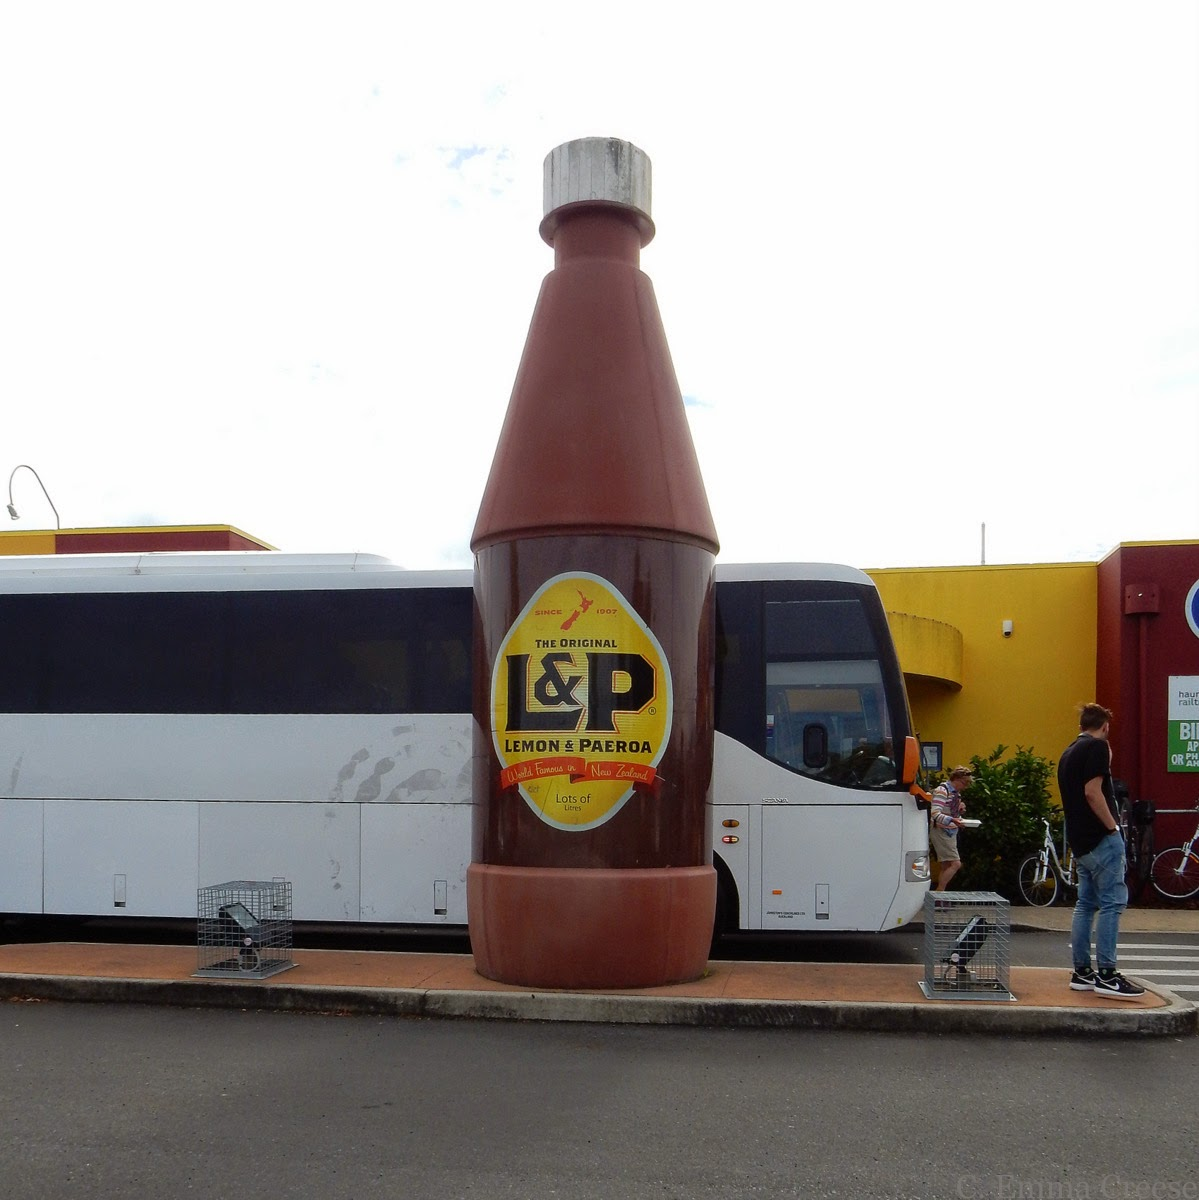 Lemon and Paeroa; the story of a famous New Zealand soft drink (well, world famous in NZ)